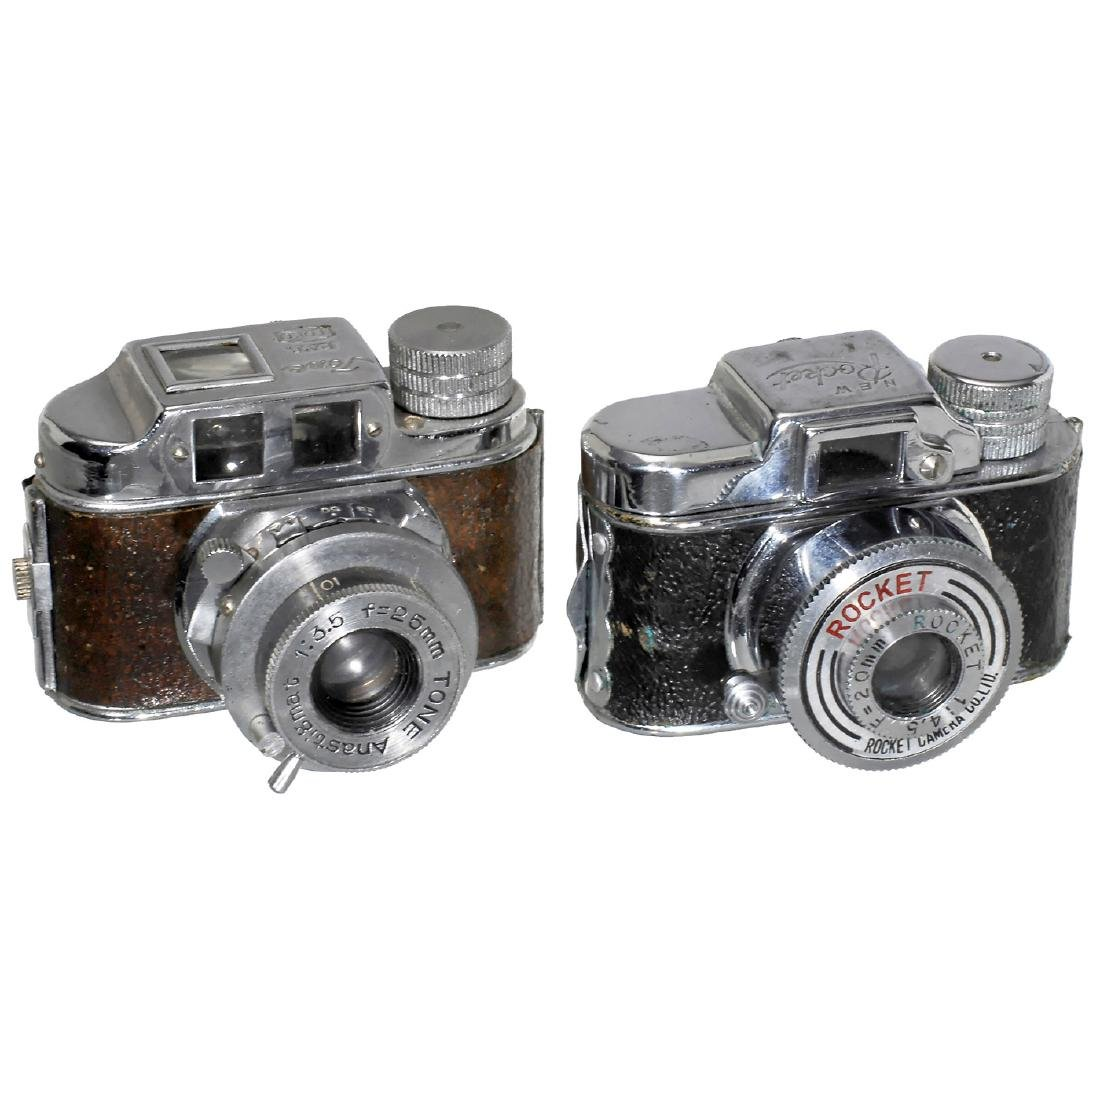 "Subminiature Cameras: ""Tone"" and ""Rocket"""